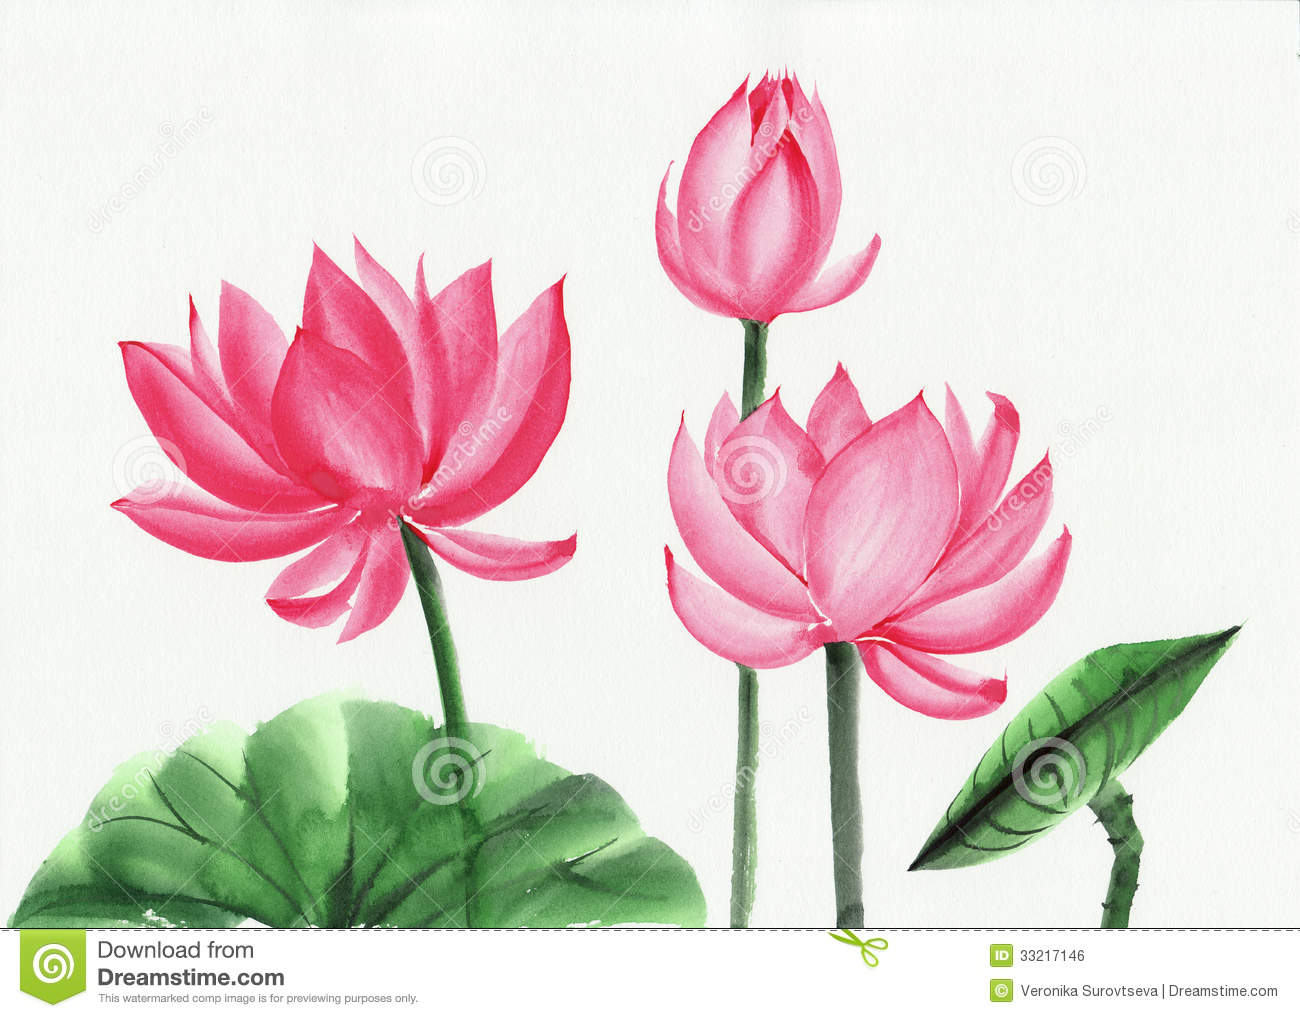 Watercolor painting of lotus flower stock illustration watercolor painting of pink lotus flower royalty free stock image izmirmasajfo